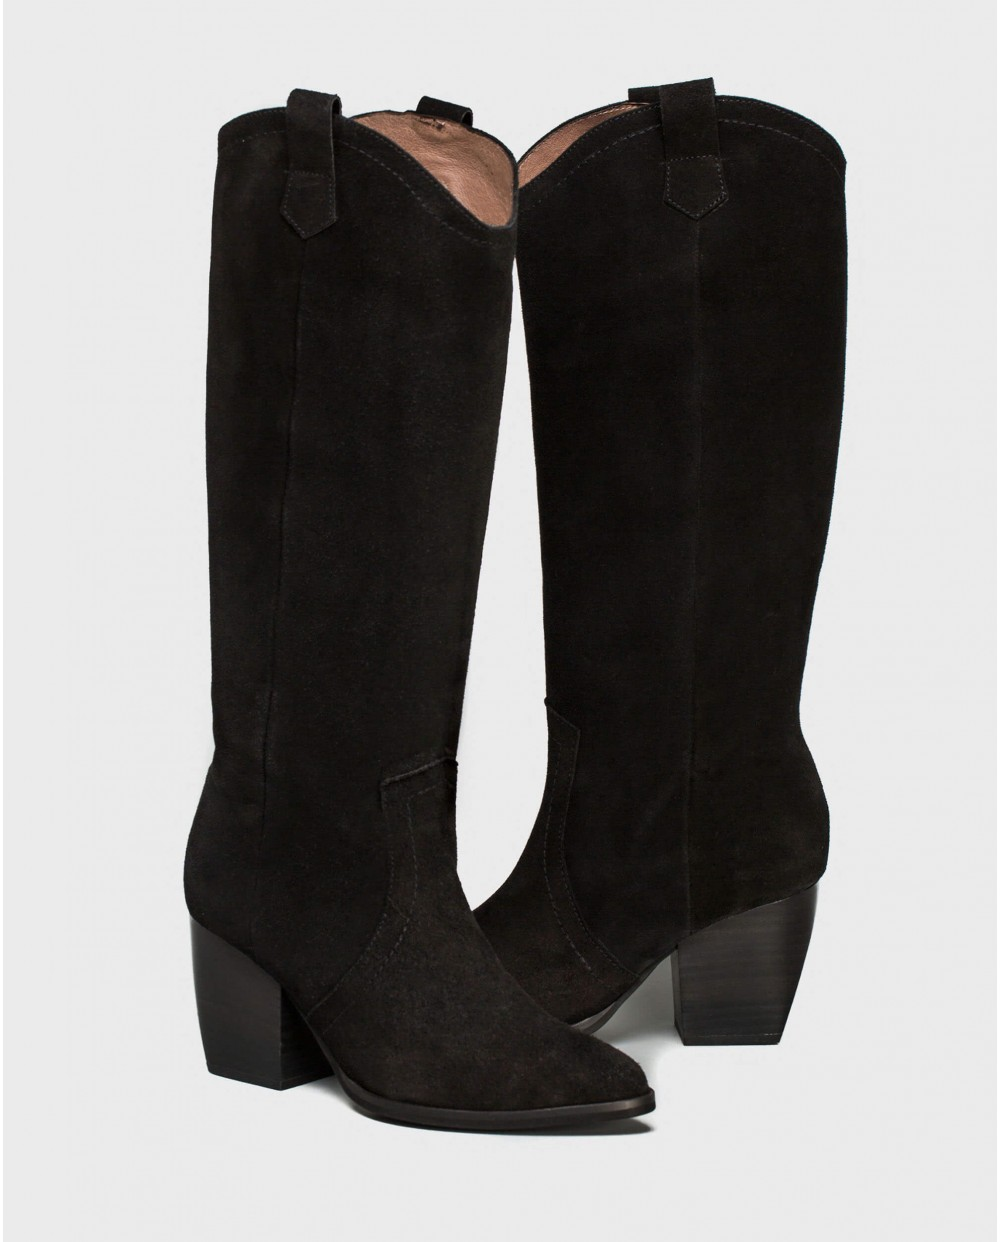 Wonders-Ankle Boots-Leather boot with cowboy heel